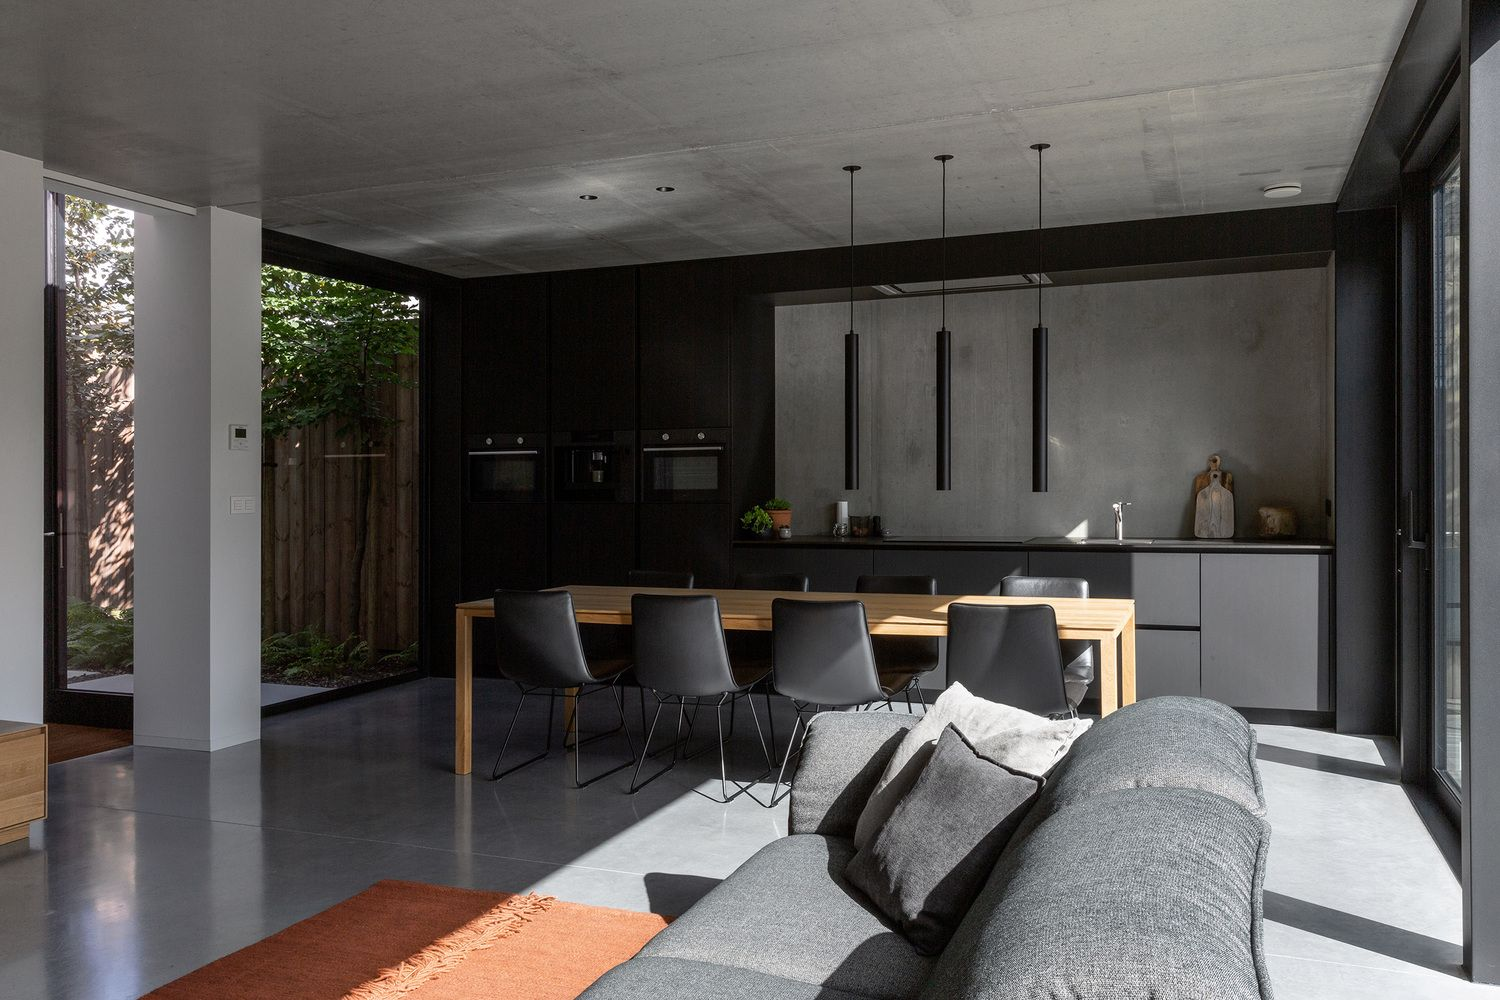 Gallery Of House Hoev Stam Architecten 26 In 2020 House Sitting Area Design House Interior